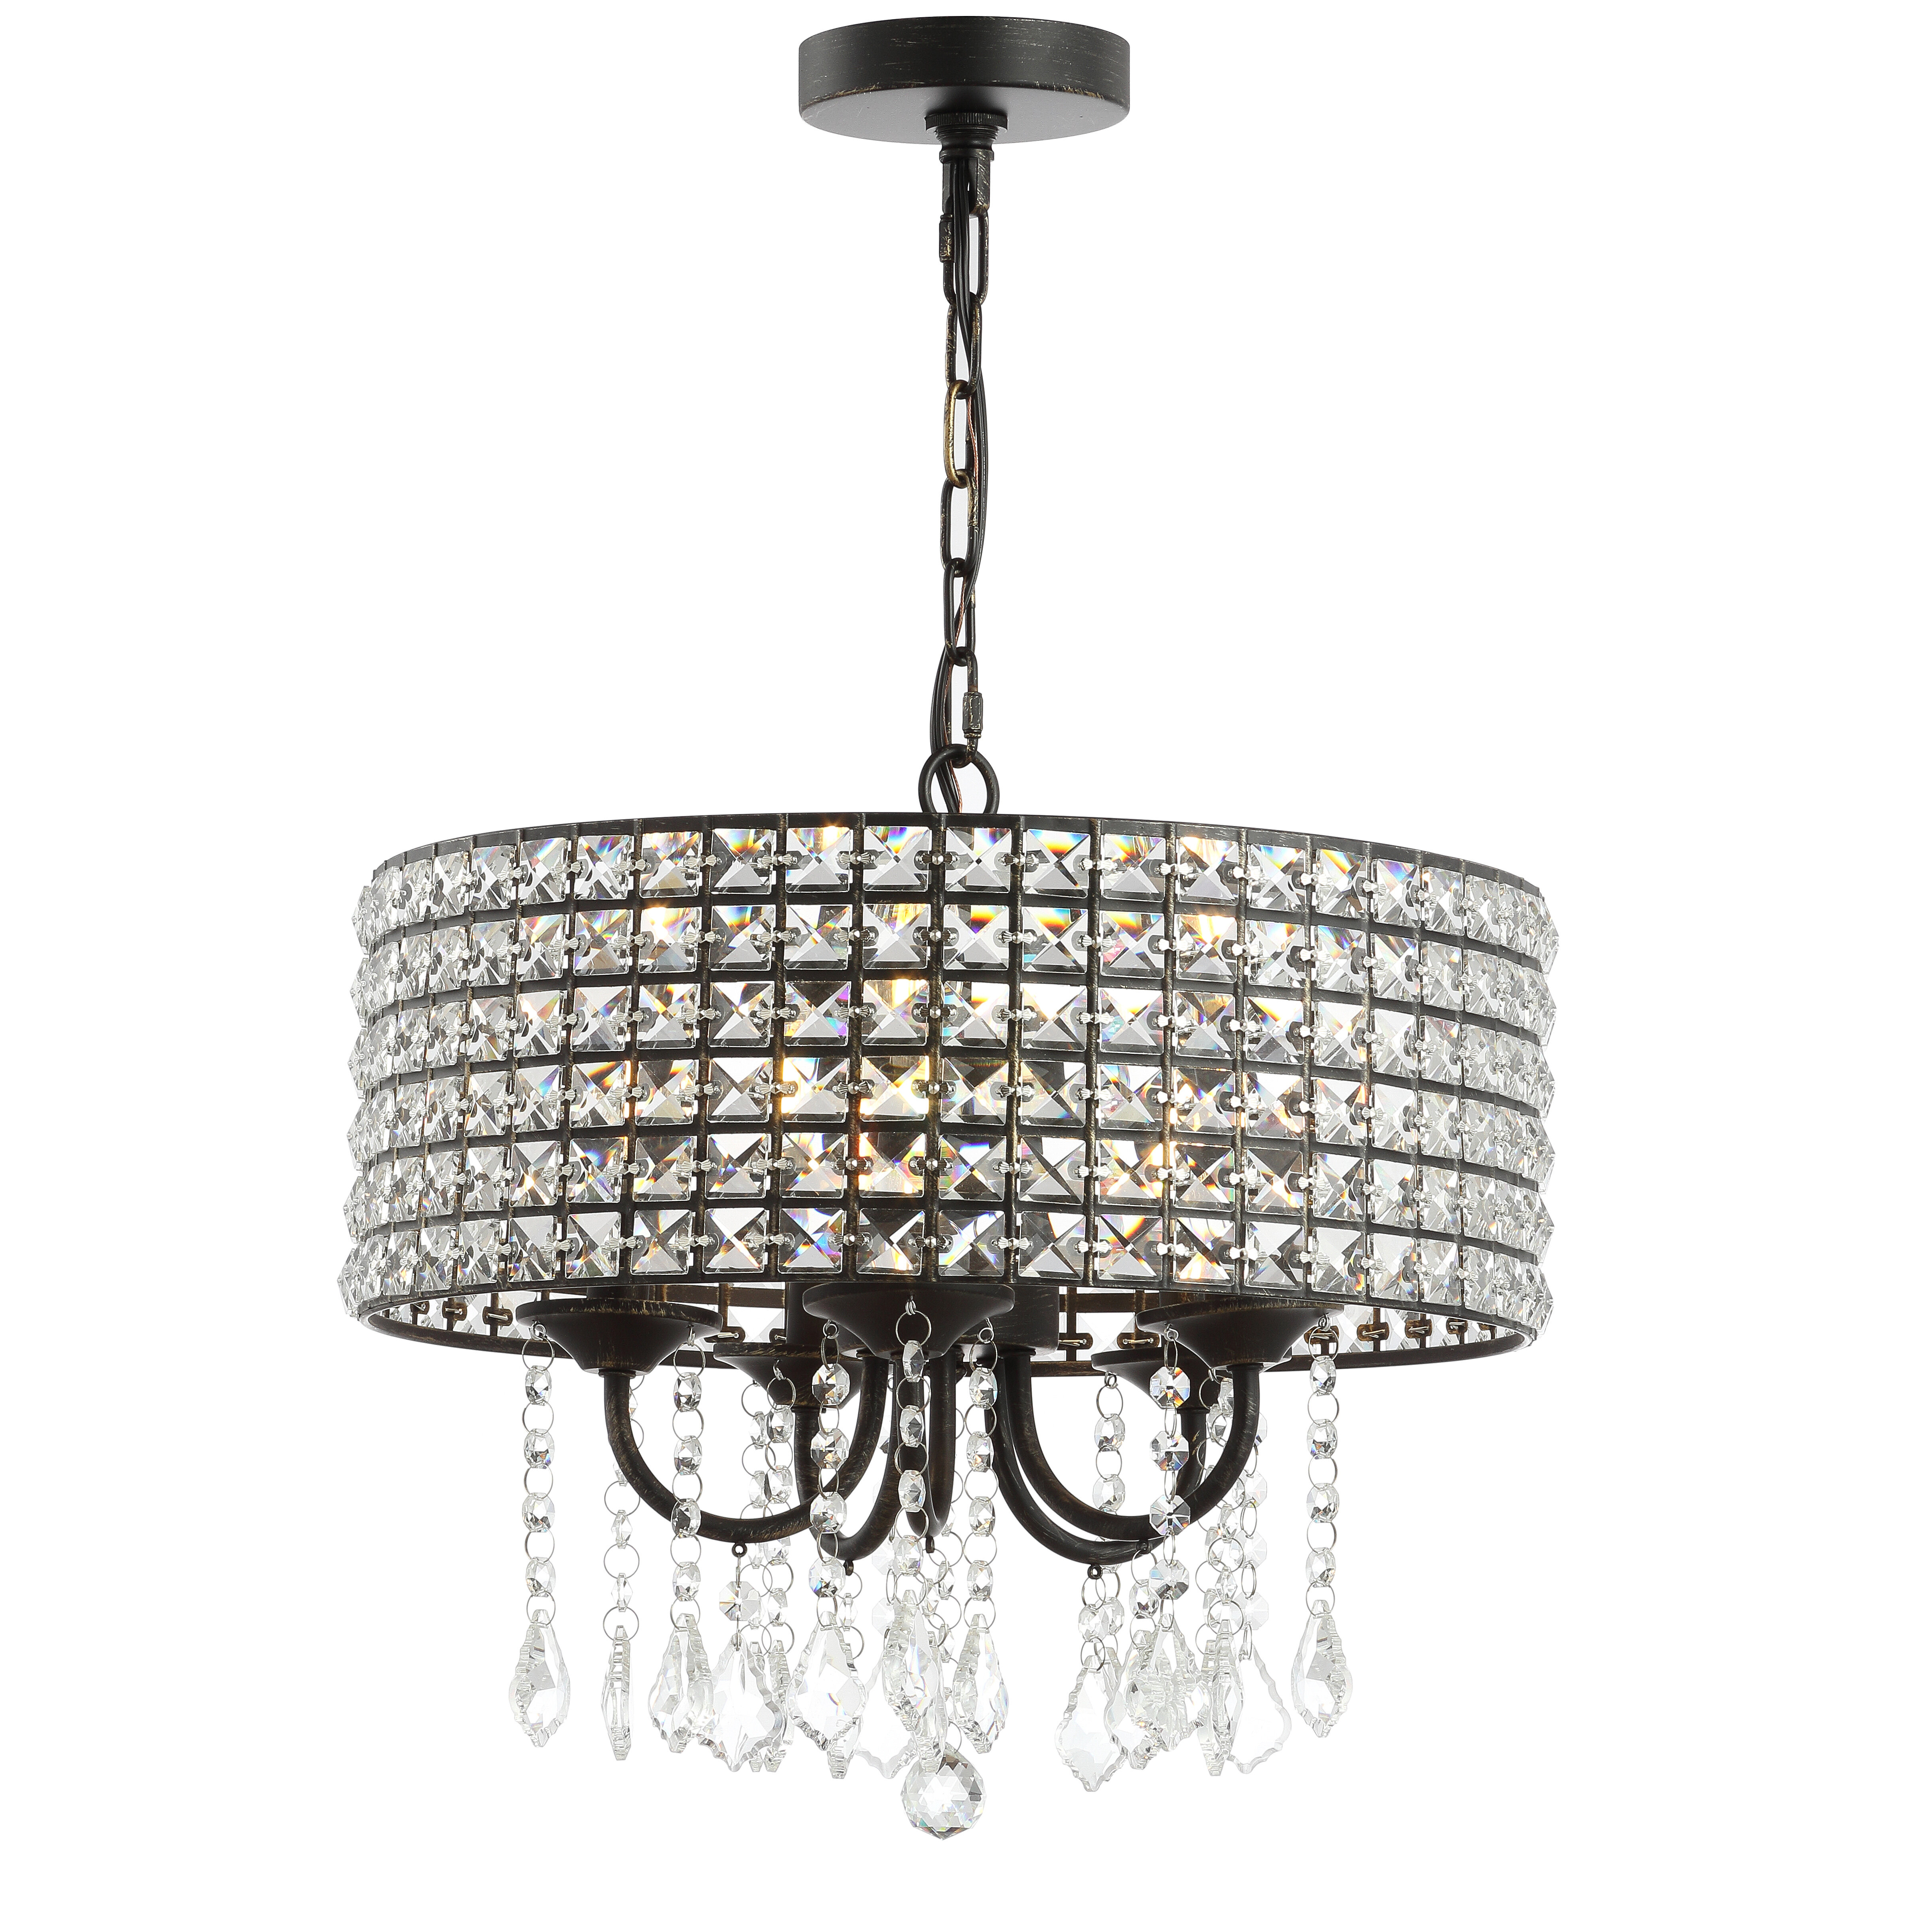 Mae 5 Light Drum Chandelier With Gisselle 4 Light Drum Chandeliers (View 10 of 30)